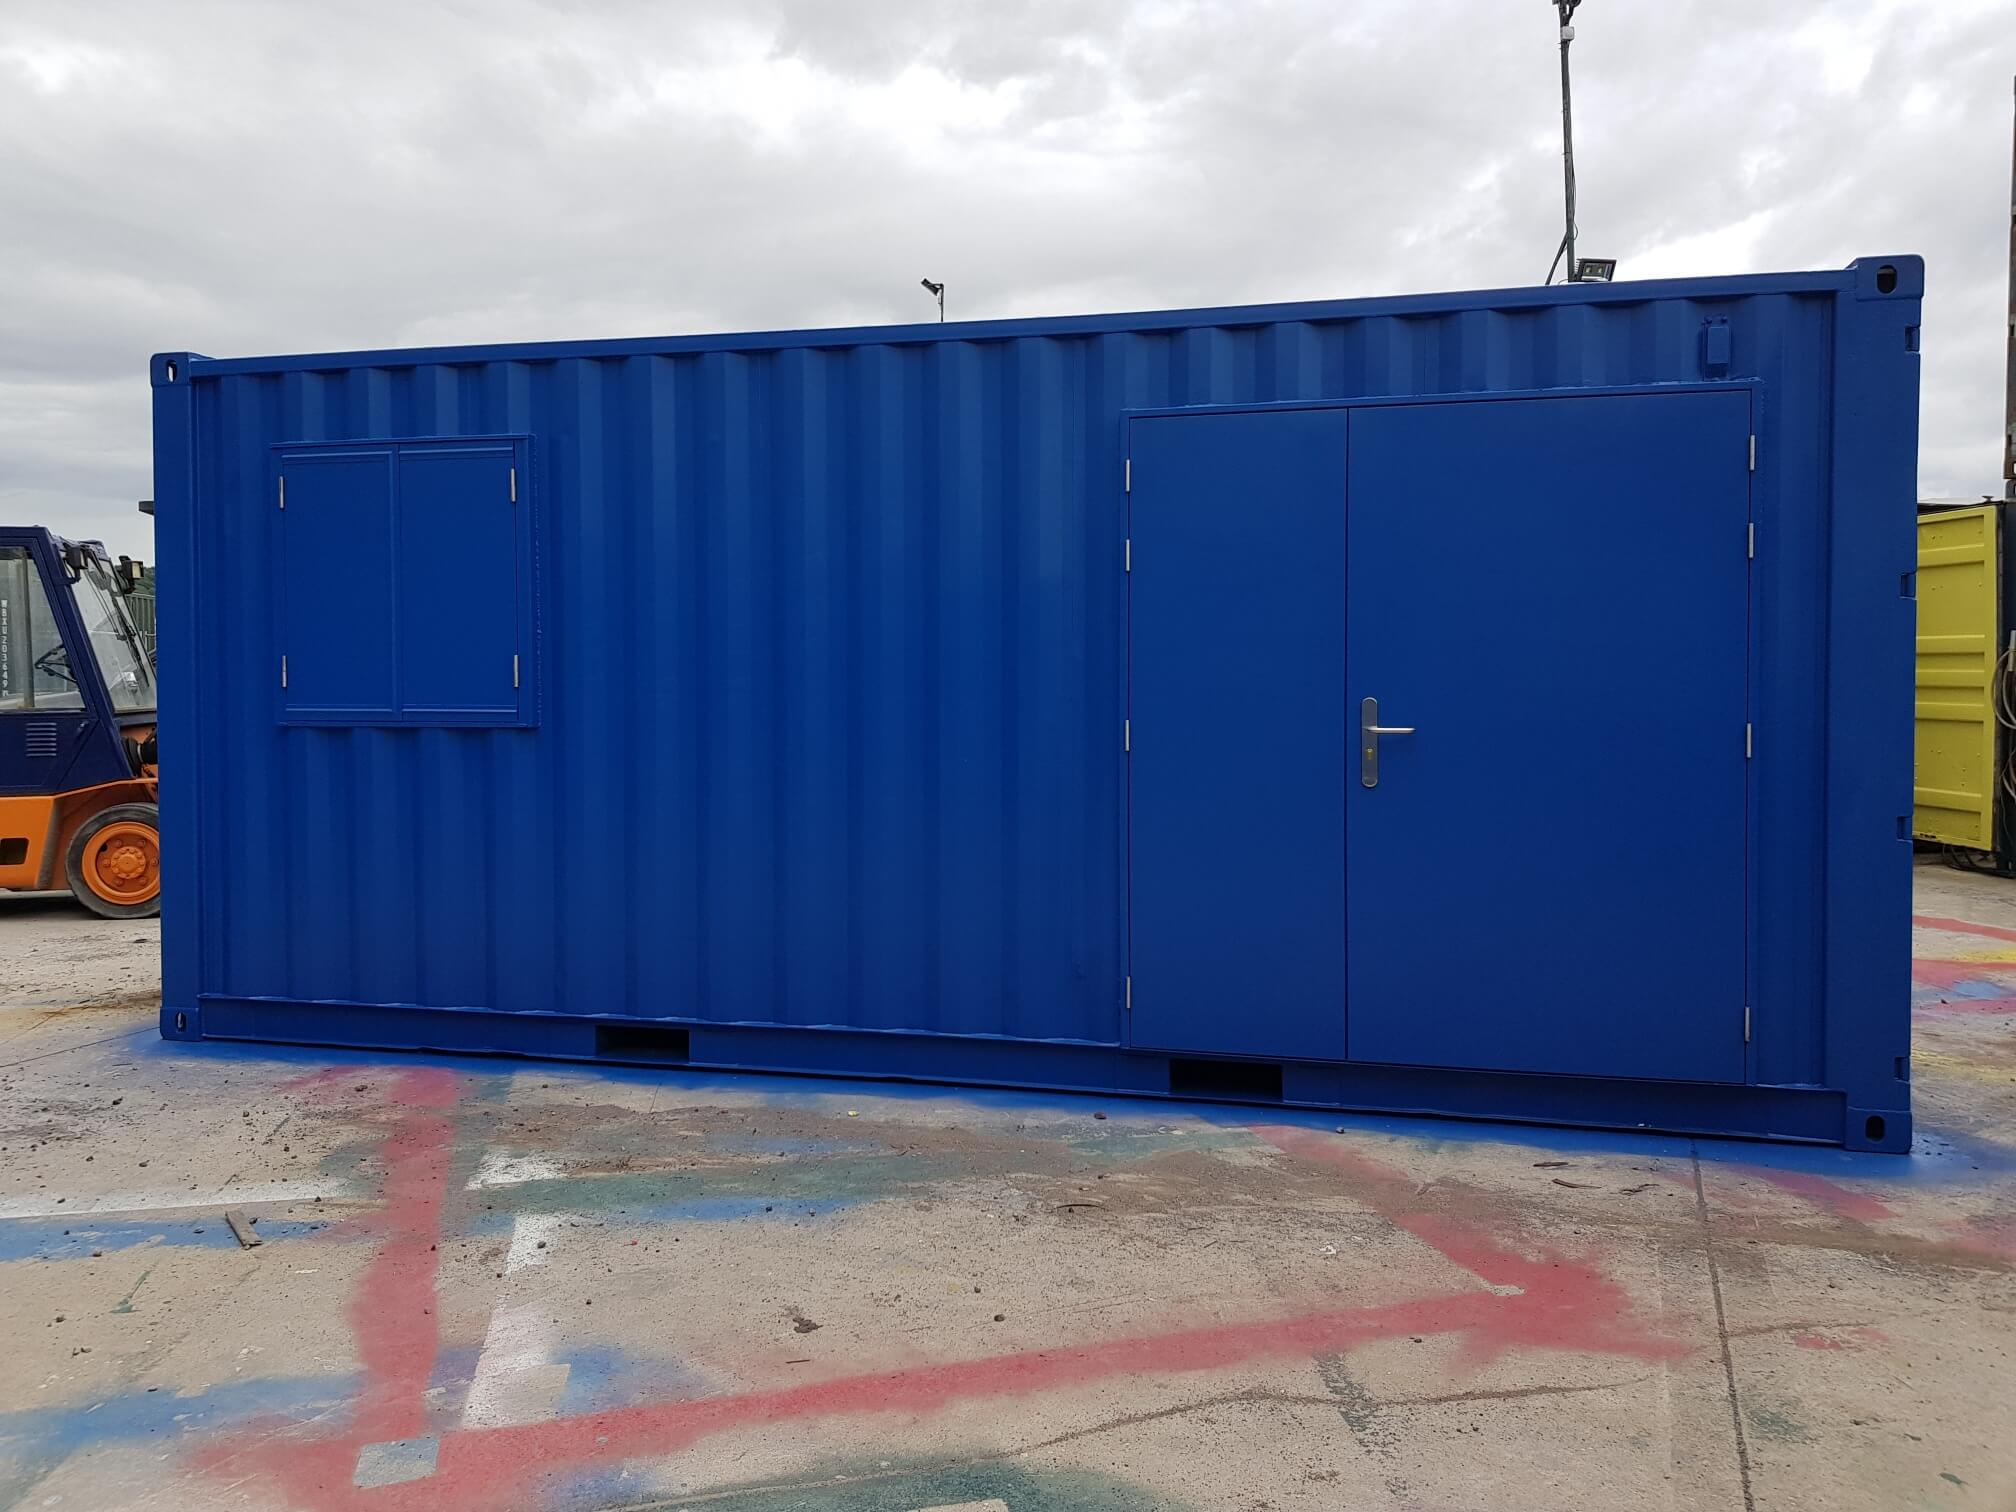 New Conversion At Cthq Container Team